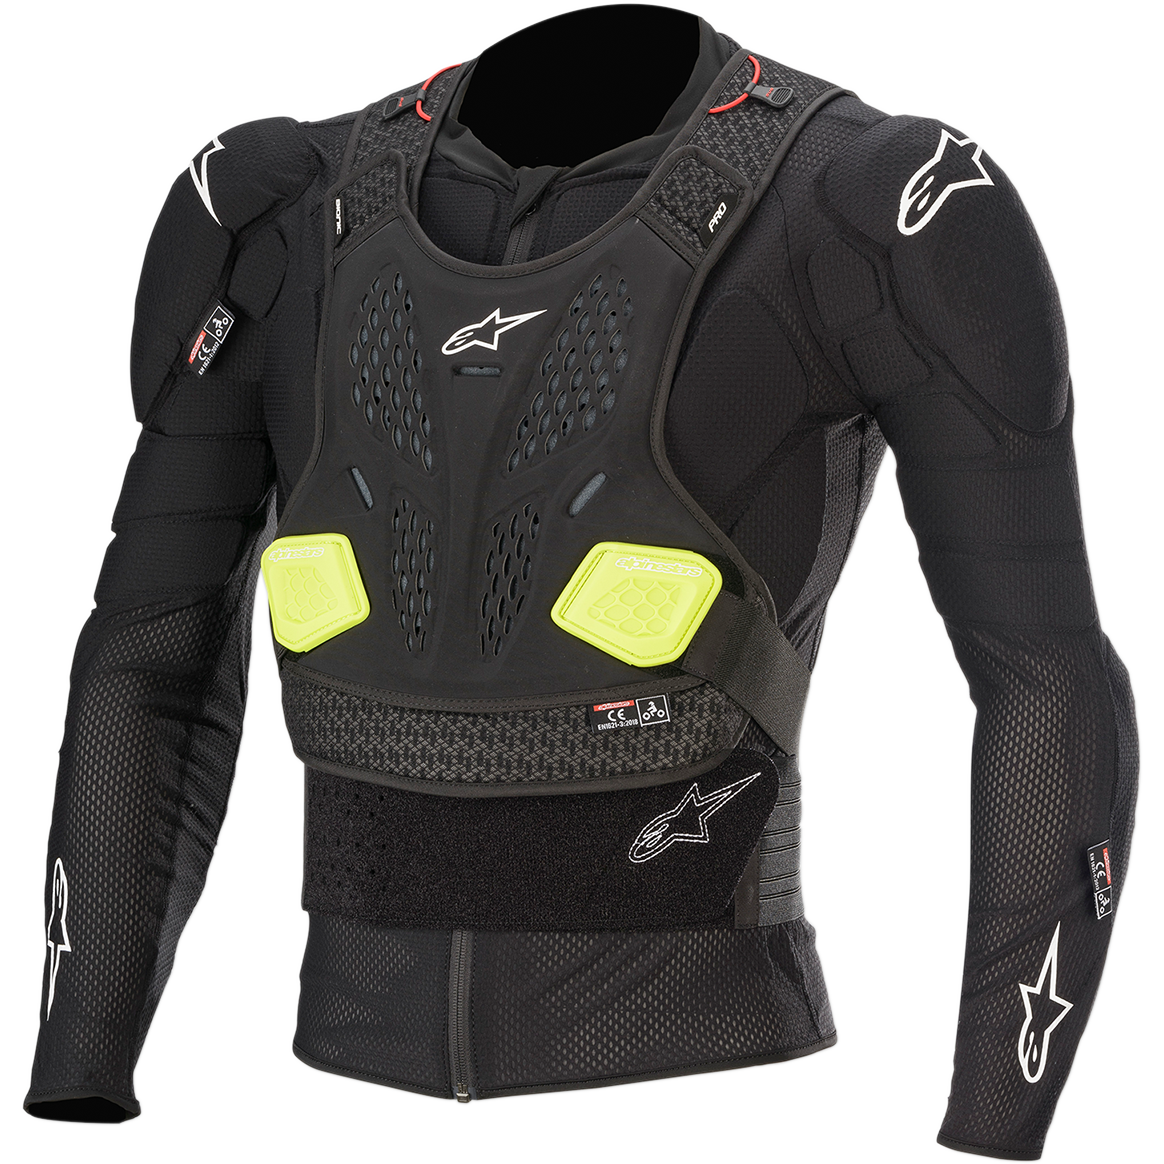 Bionic Pro V2 Protection Jacket